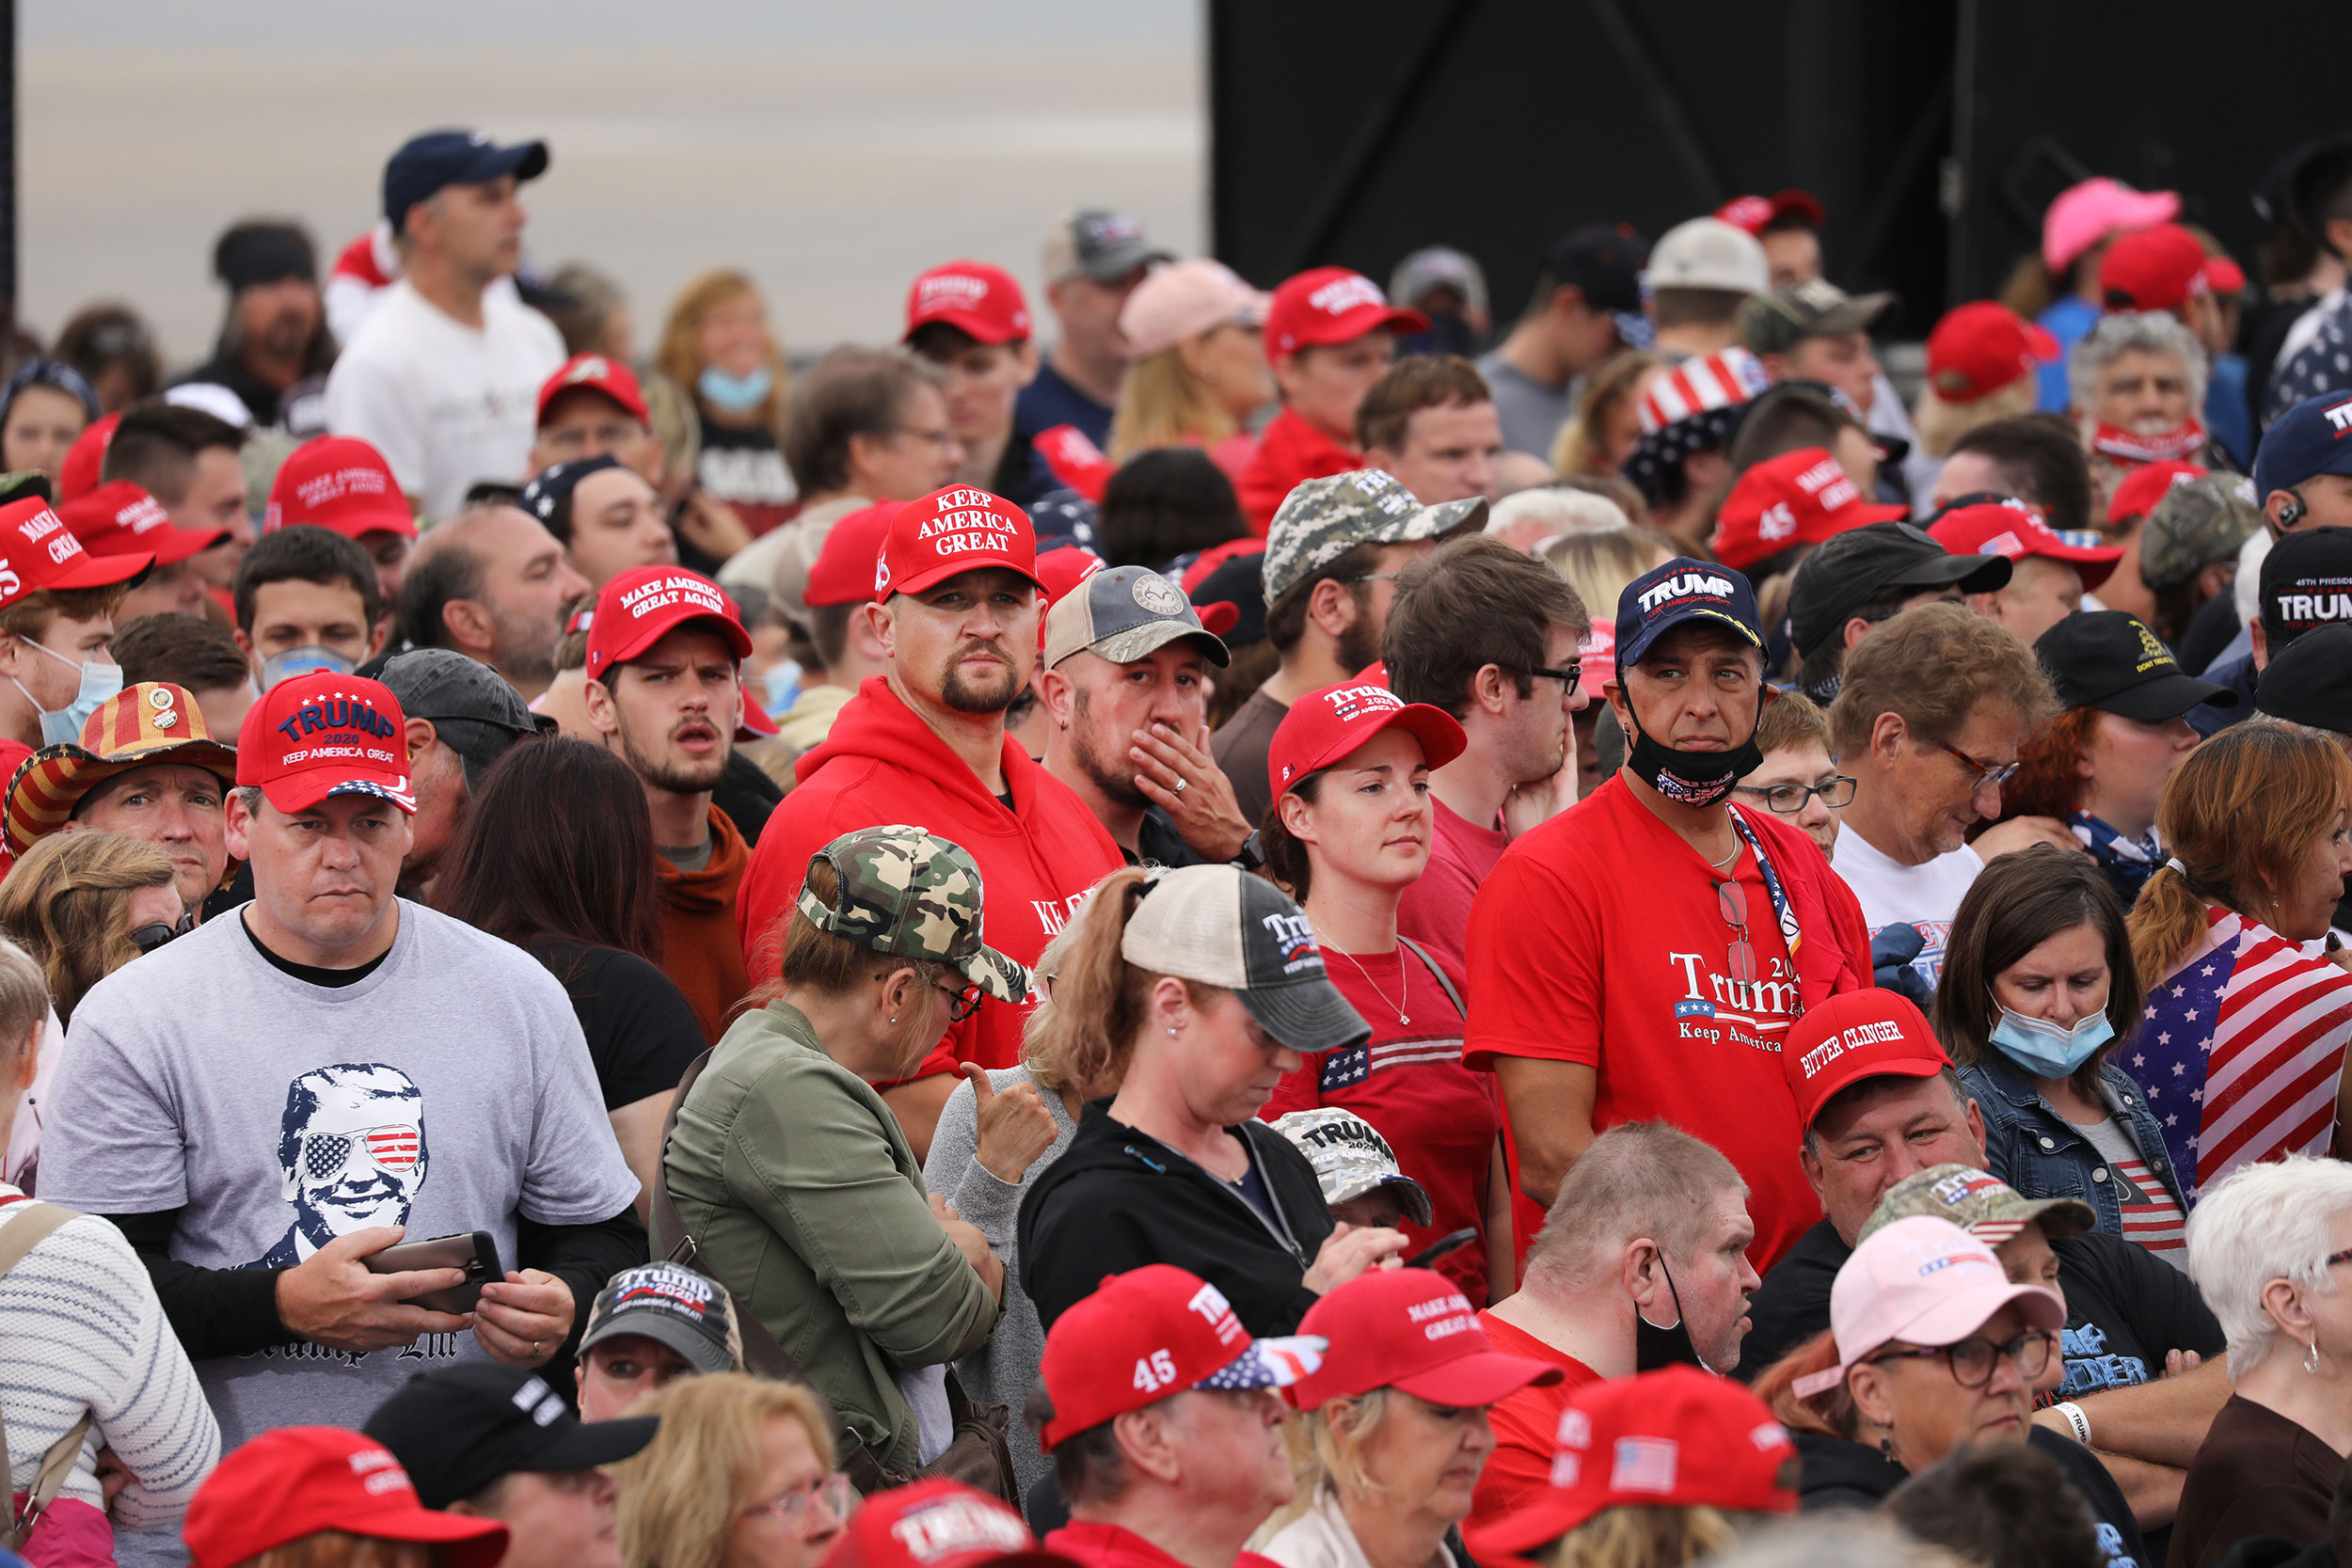 People gather at Harrisburg International Airport ahead of President Trump's rally in Middletown, Pennsylvania, on Saturday.